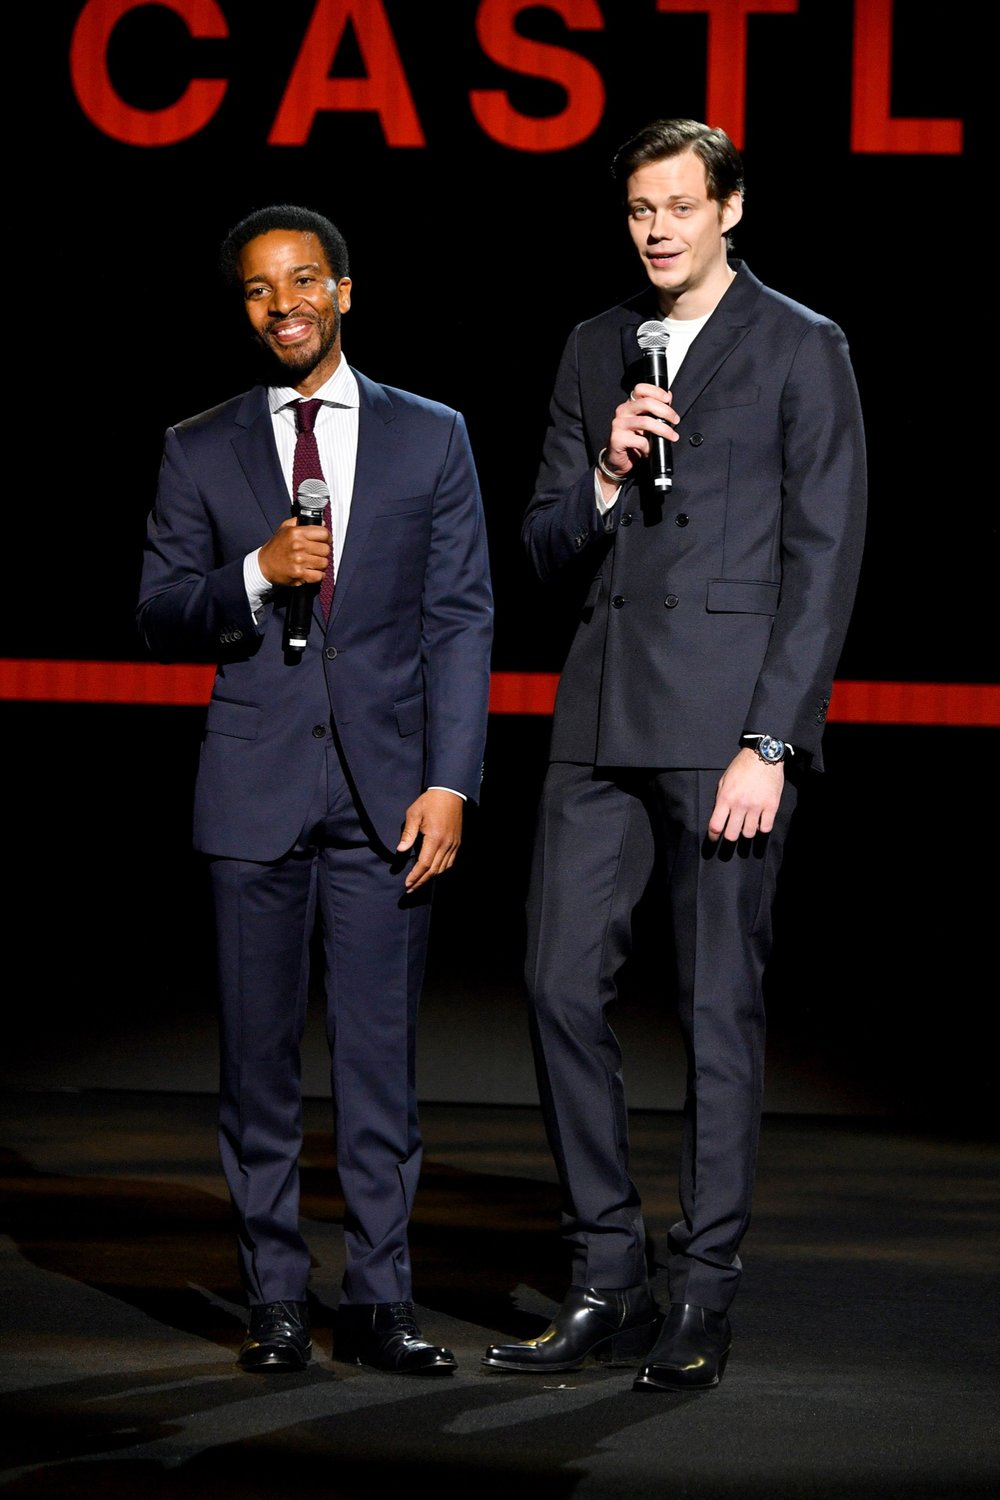 NEW YORK, NY - MAY 02:  Actors Jerrod Carmichael and Bill Skarsgard speak onstage during Hulu Upfront 2018 at The Hulu Theater at Madison Square Garden on May 2, 2018 in New York City.  (Photo by Dia Dipasupil/Getty Images for Hulu) *** Local Caption *** Jerrod Carmichael;Bill Skarsgard